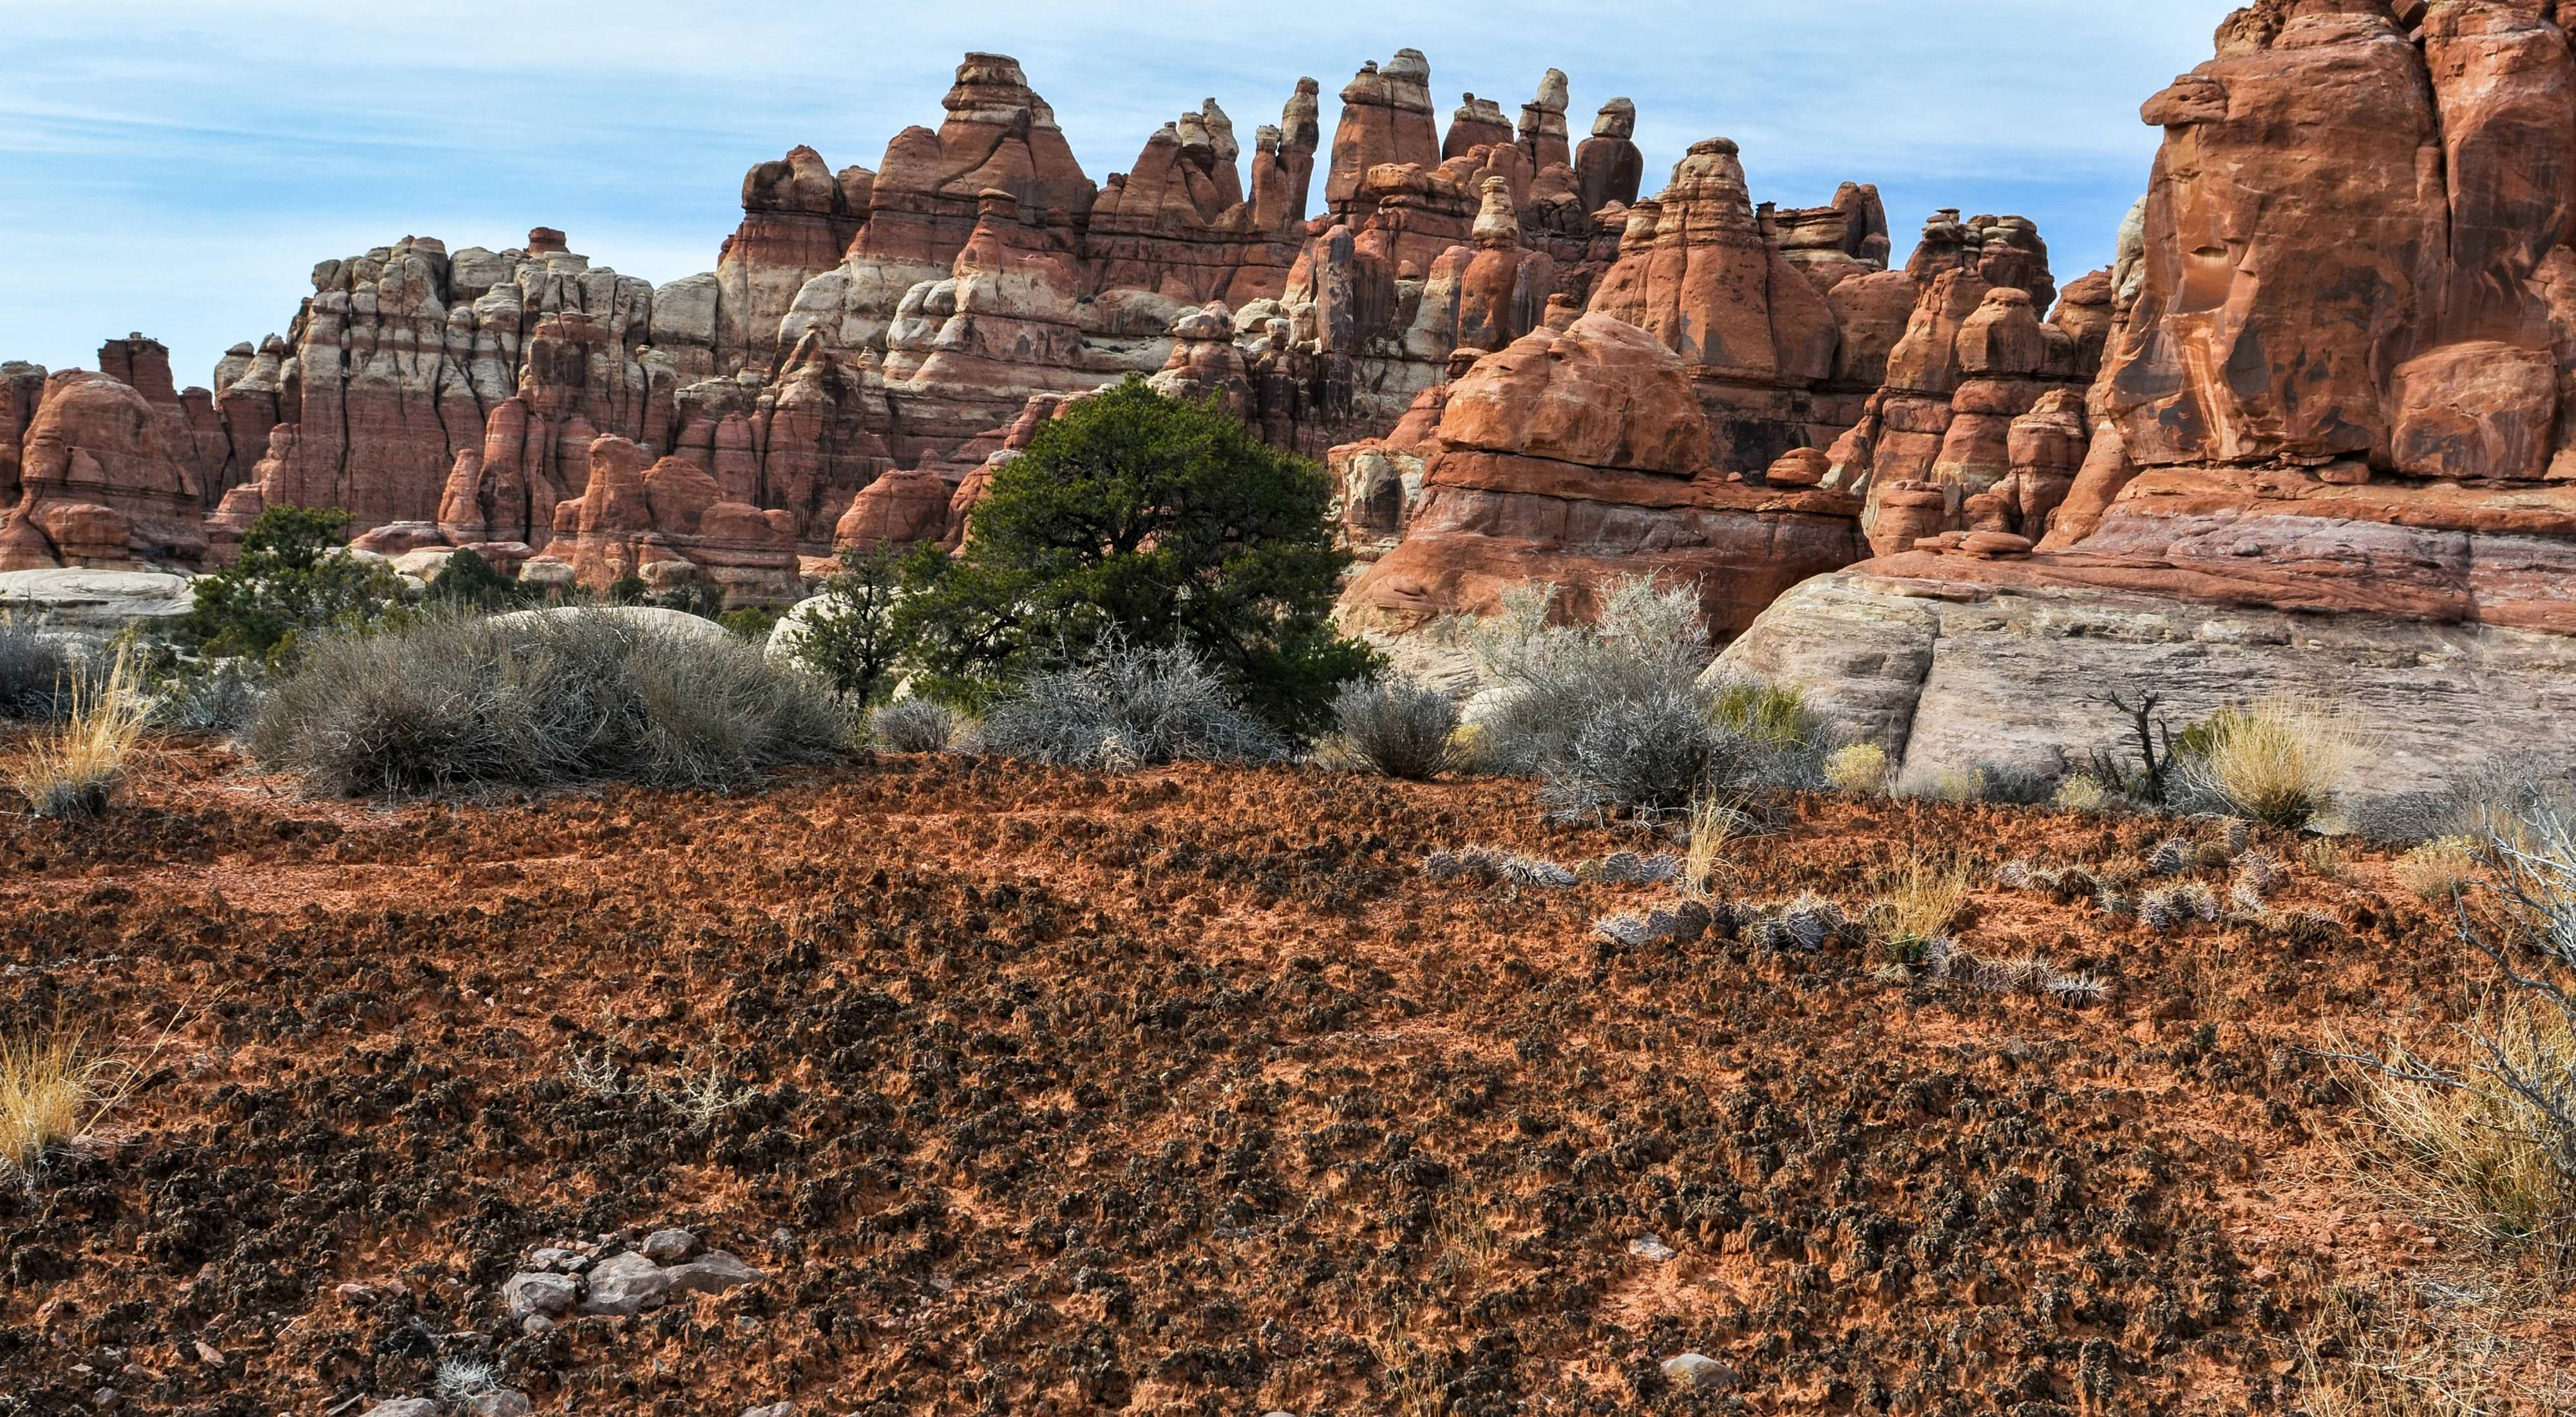 A landscape of red rock cliffs with biocrust in the foreground. The biocrust looks like a crusty reddish brown soil with scattered cactus plants.